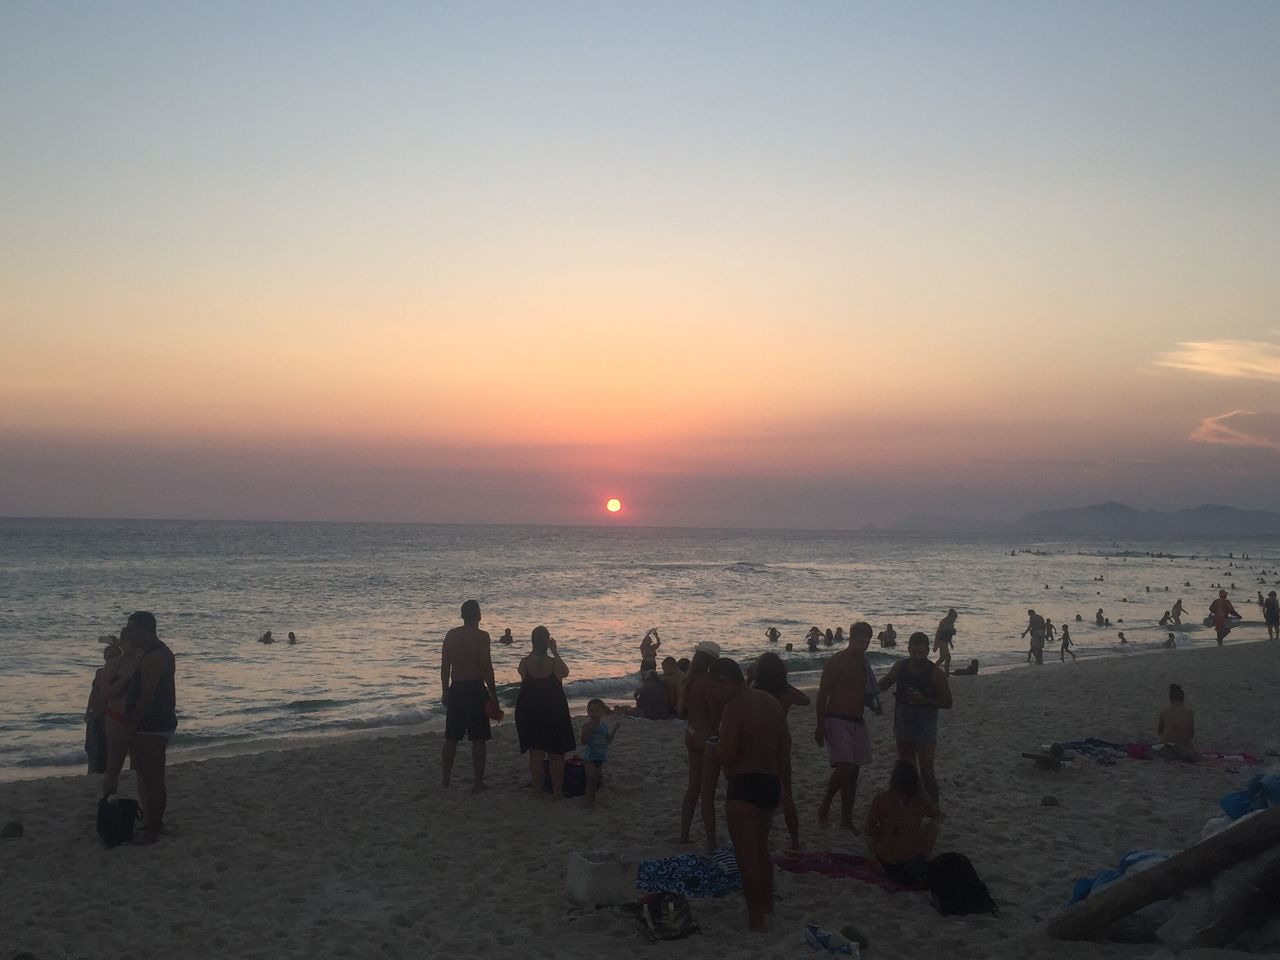 beach, sunset, sea, sand, nature, water, sky, horizon over water, real people, scenics, large group of people, lifestyles, leisure activity, men, beauty in nature, outdoors, vacations, women, summer, standing, relaxation, togetherness, day, people, adult